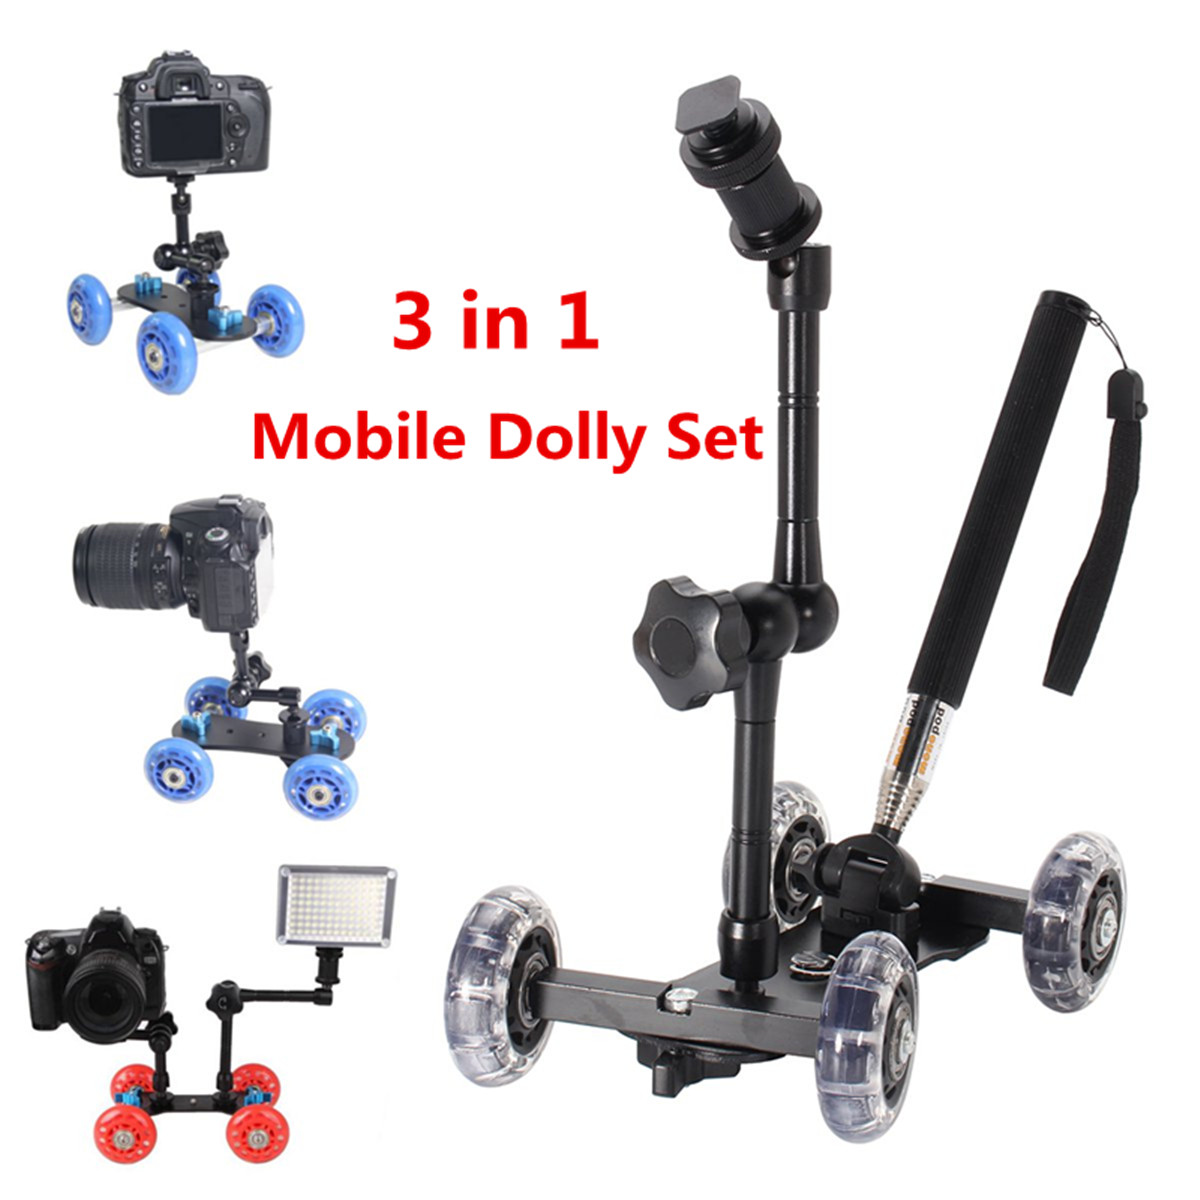 Table Camera Video Wheels Rail Rolling Track Slider Dolly Car Glide Set Stabilizer Skater Rail System Photo Studio Accessories